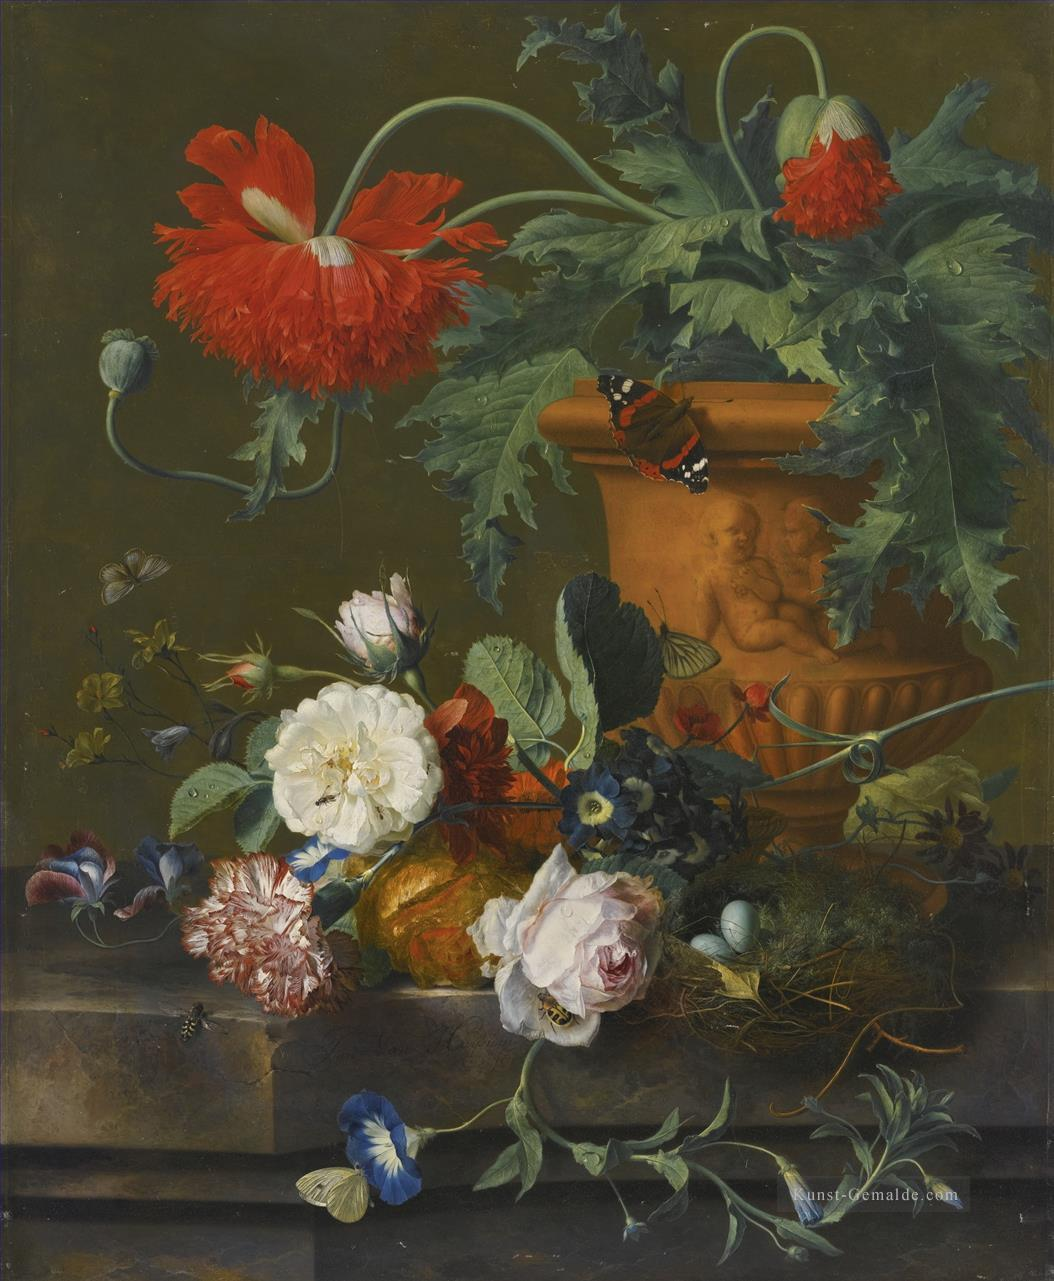 A Stillleben OF POPPIES IN A TERRACOTTA VASE ROSES A CARNATION AND OTHER FLOWERS Jan van Huysum klassische Blüten Ölgemälde